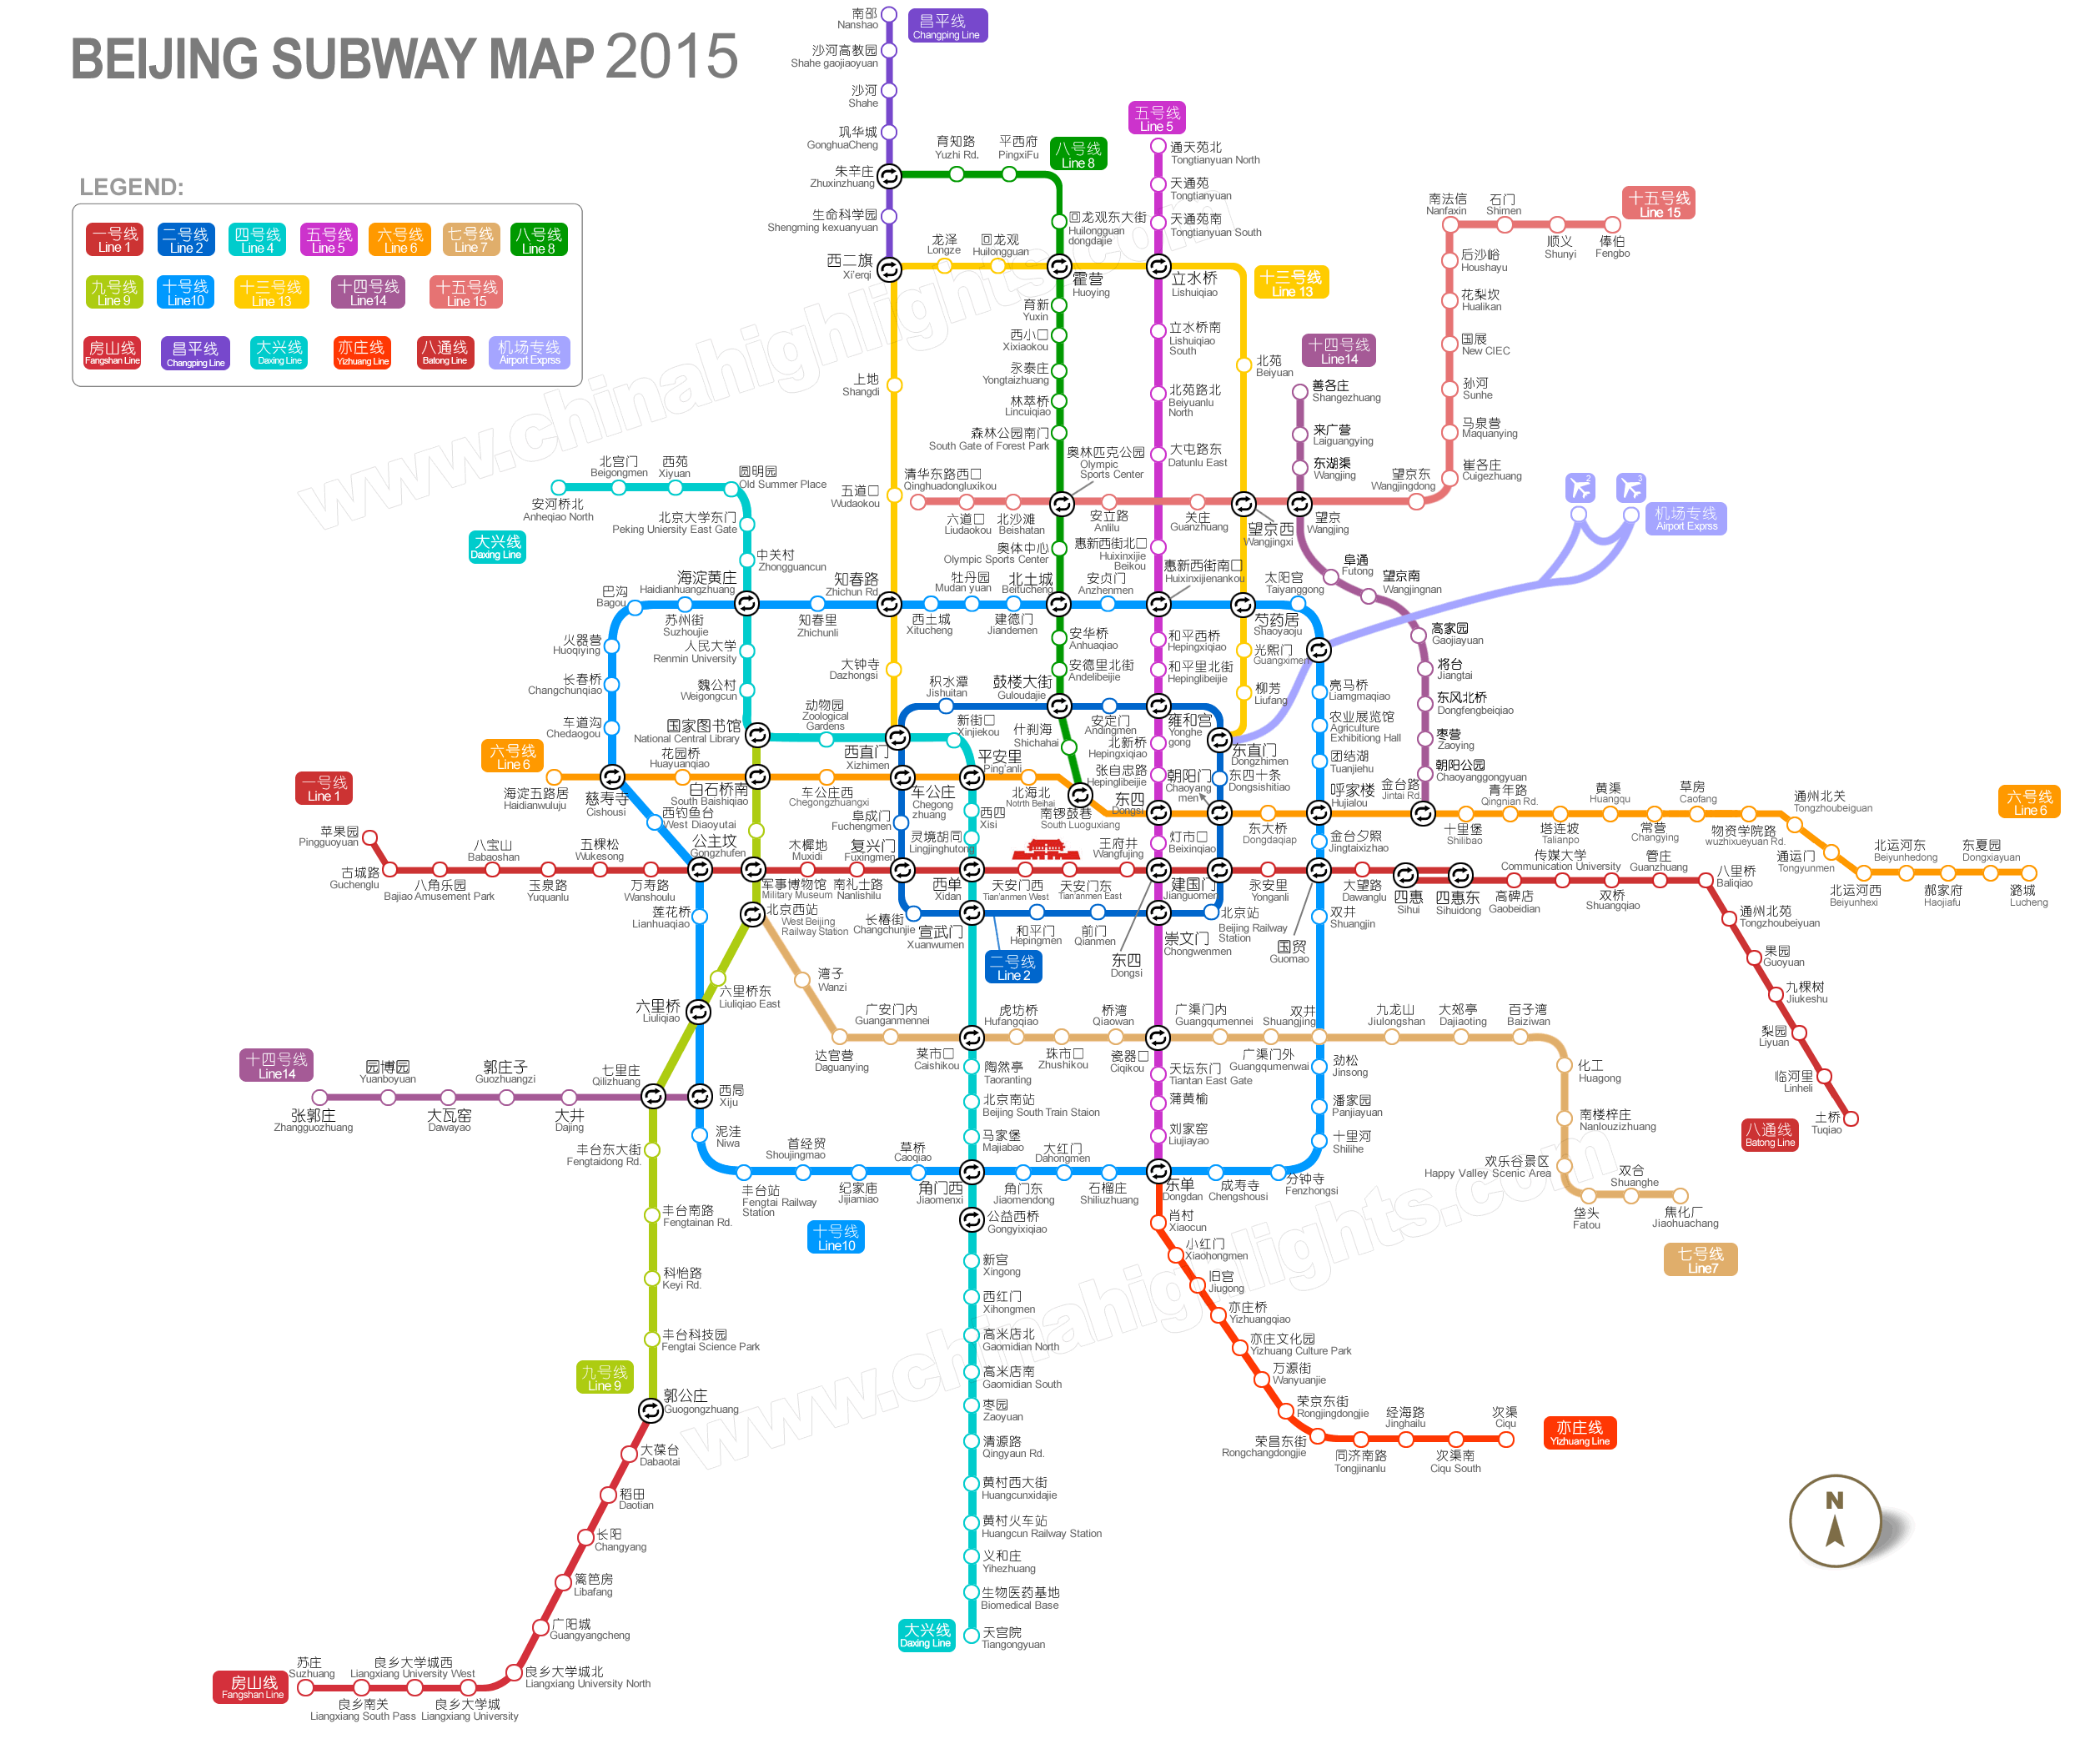 Beijing Subway Map 2017 Legend.Beijing Subway Map 2016 Autobedrijfmaatje